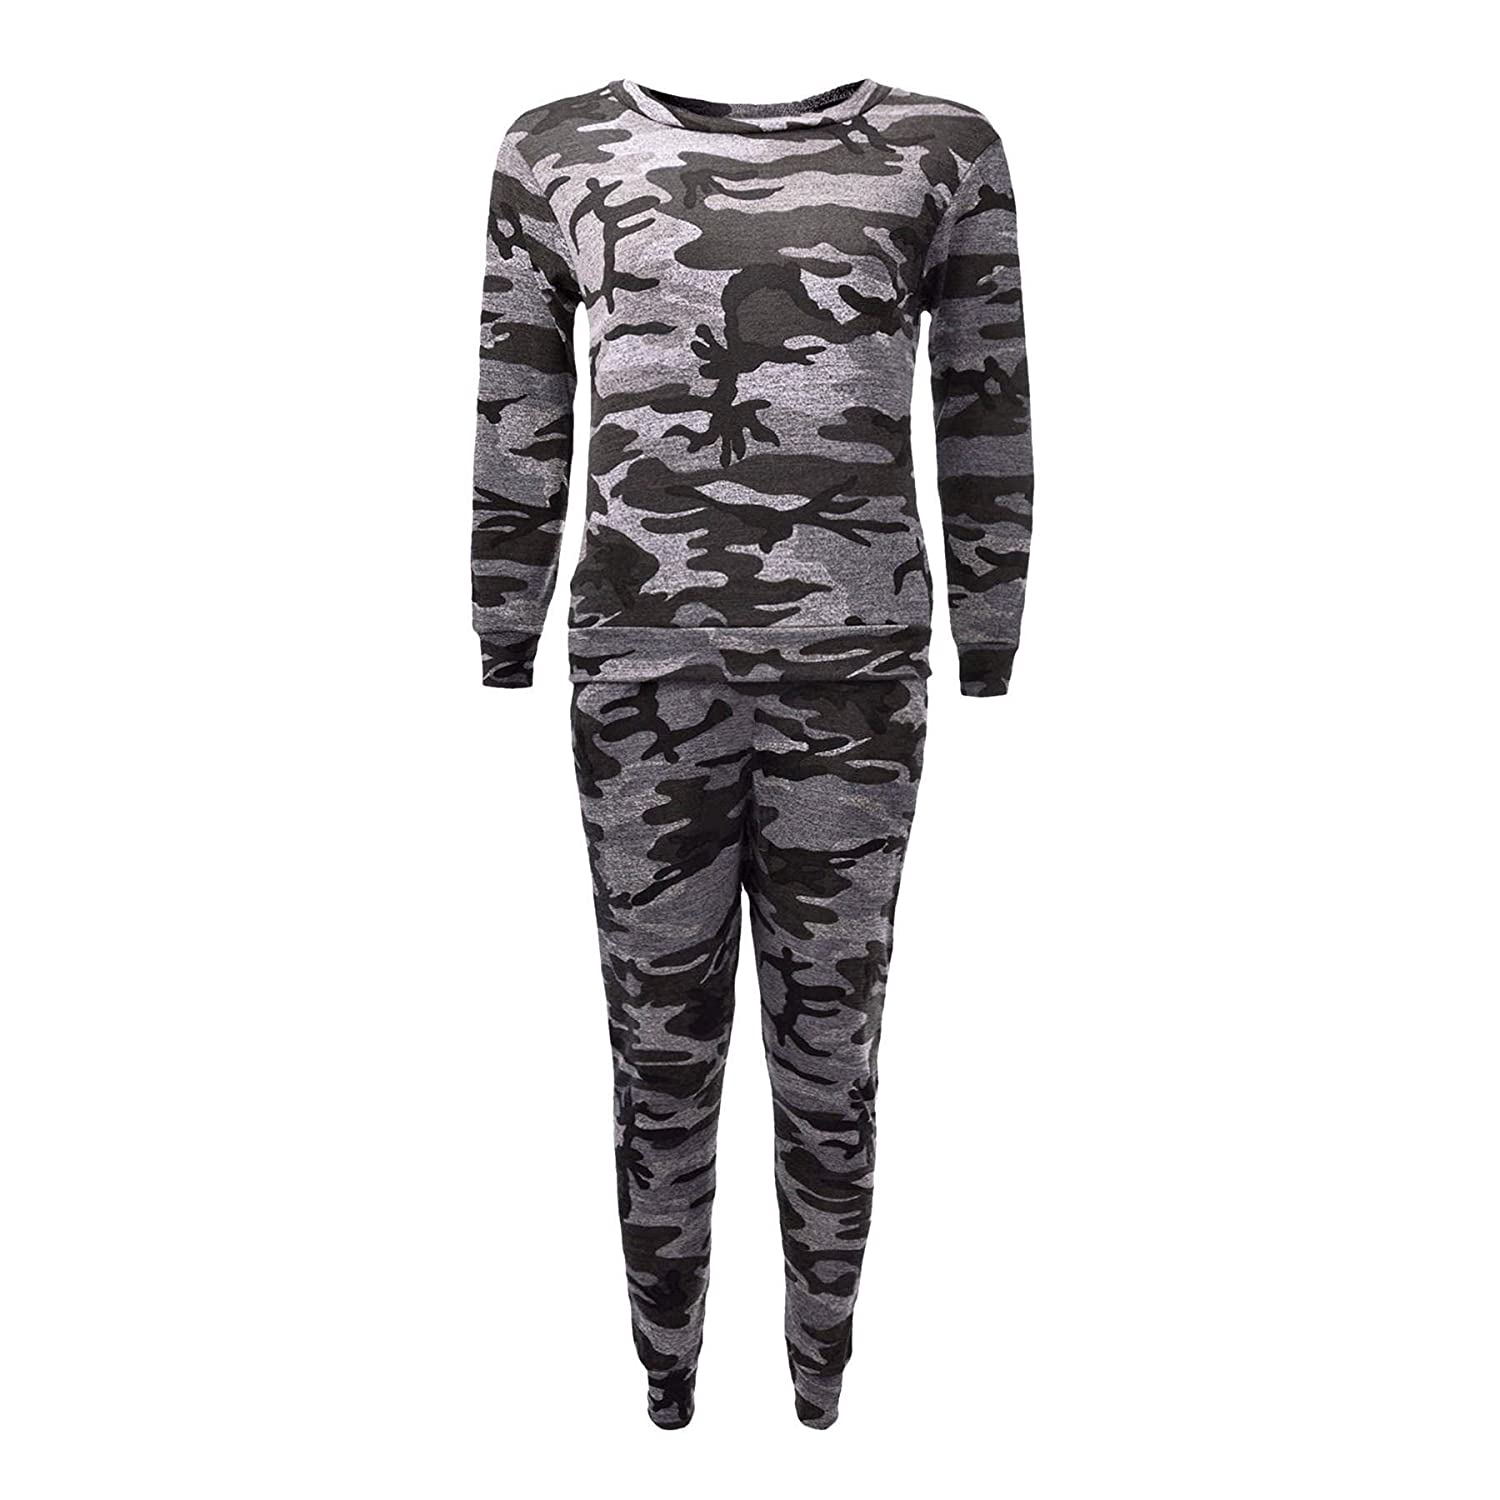 Neue Mädchen Kinder Camo Camouflage Print Trainingsanzug Co-Ord Set Sweatshirt Jogger Alter.